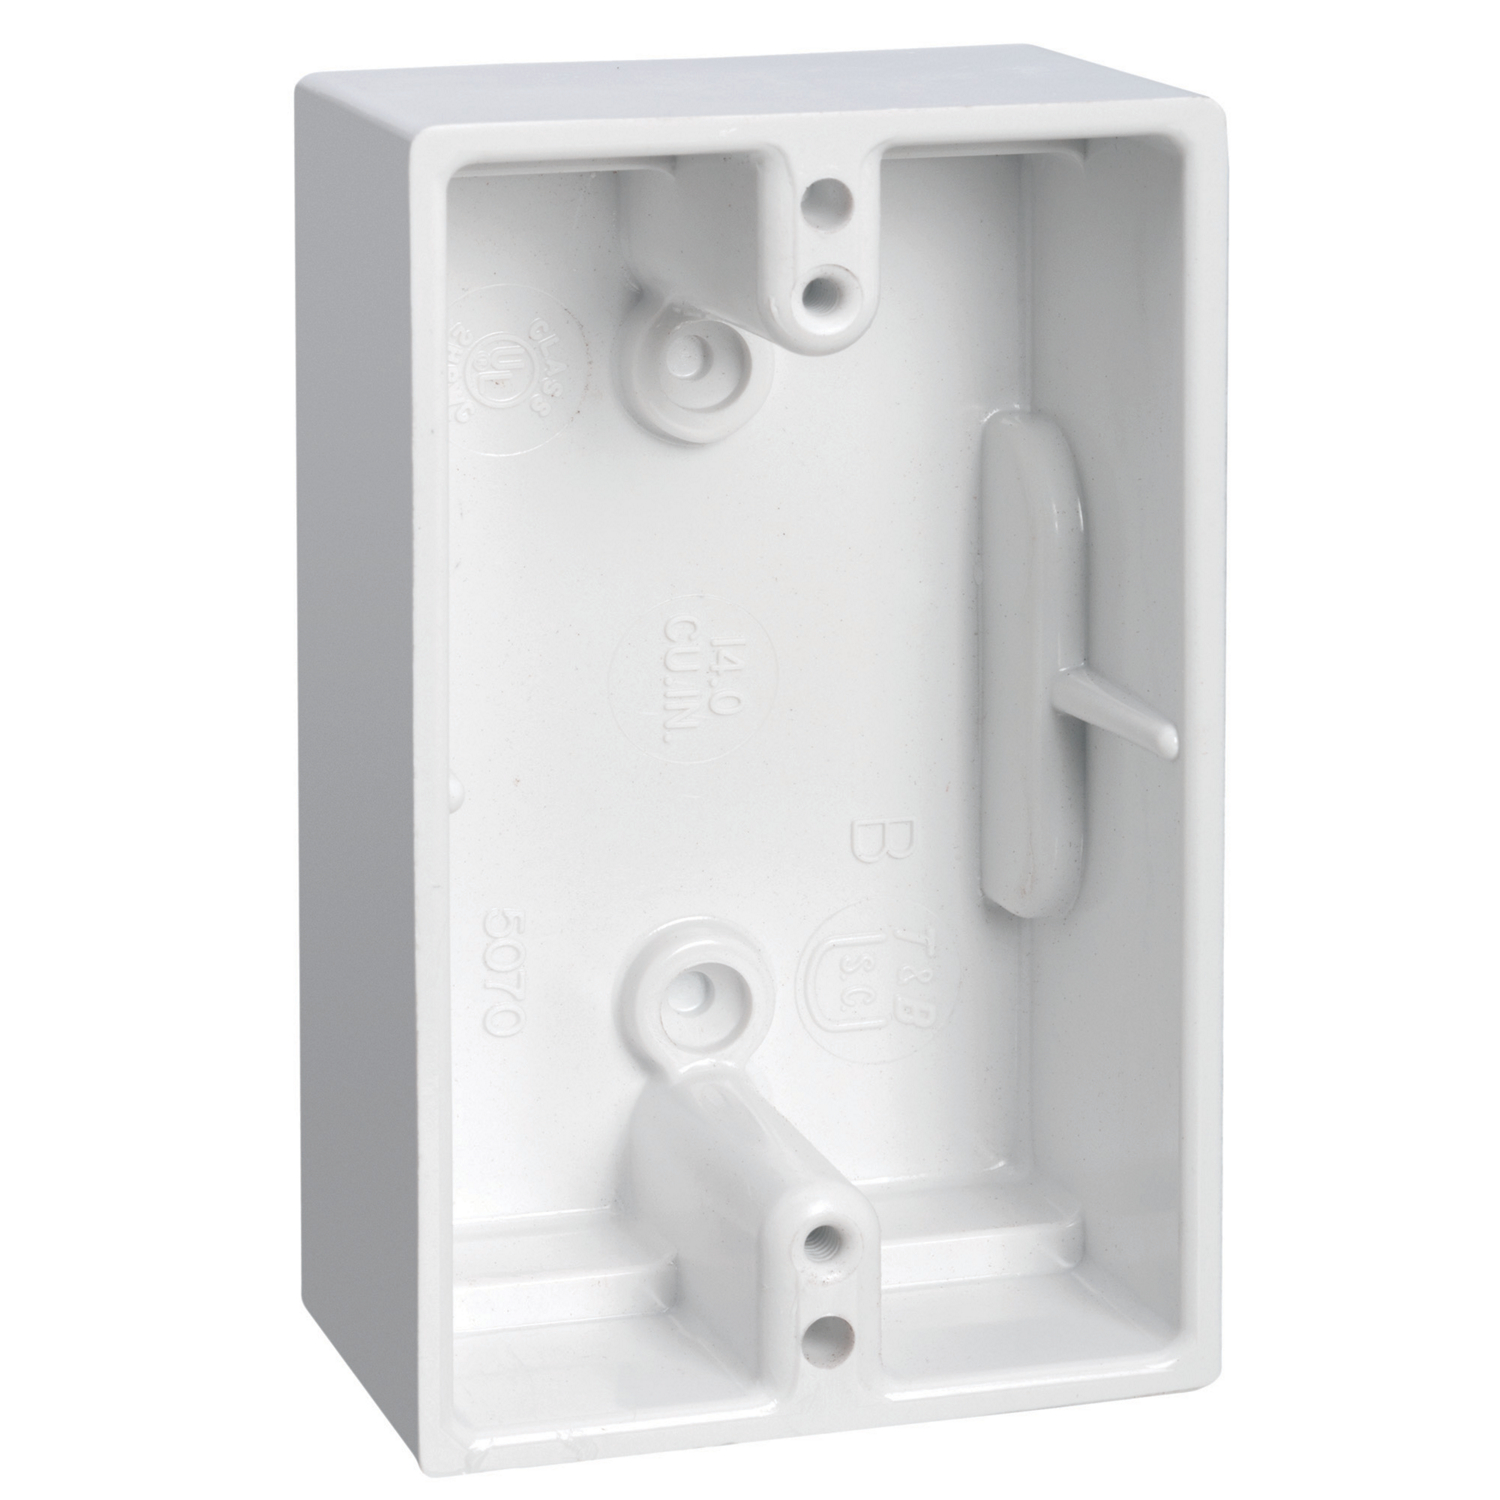 Plastic Switch Plate Covers Magnificent Boxes And Covers Utility Boxes  Standard Electric Supply Decorating Design